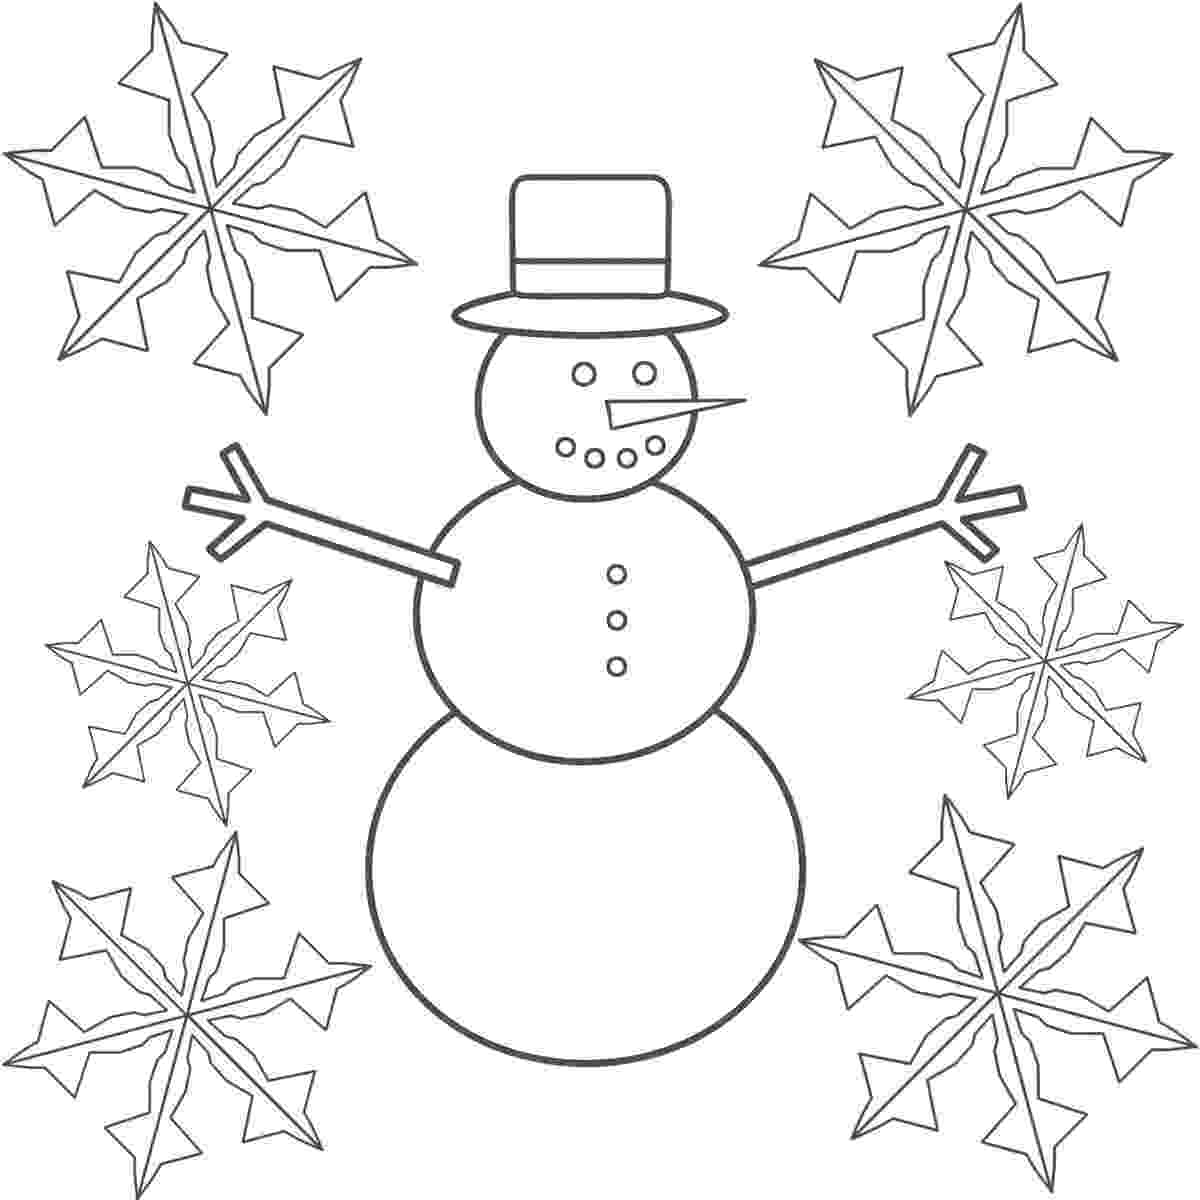 free snowflake coloring pages free printable snowflake coloring pages for kids snowflake free pages coloring